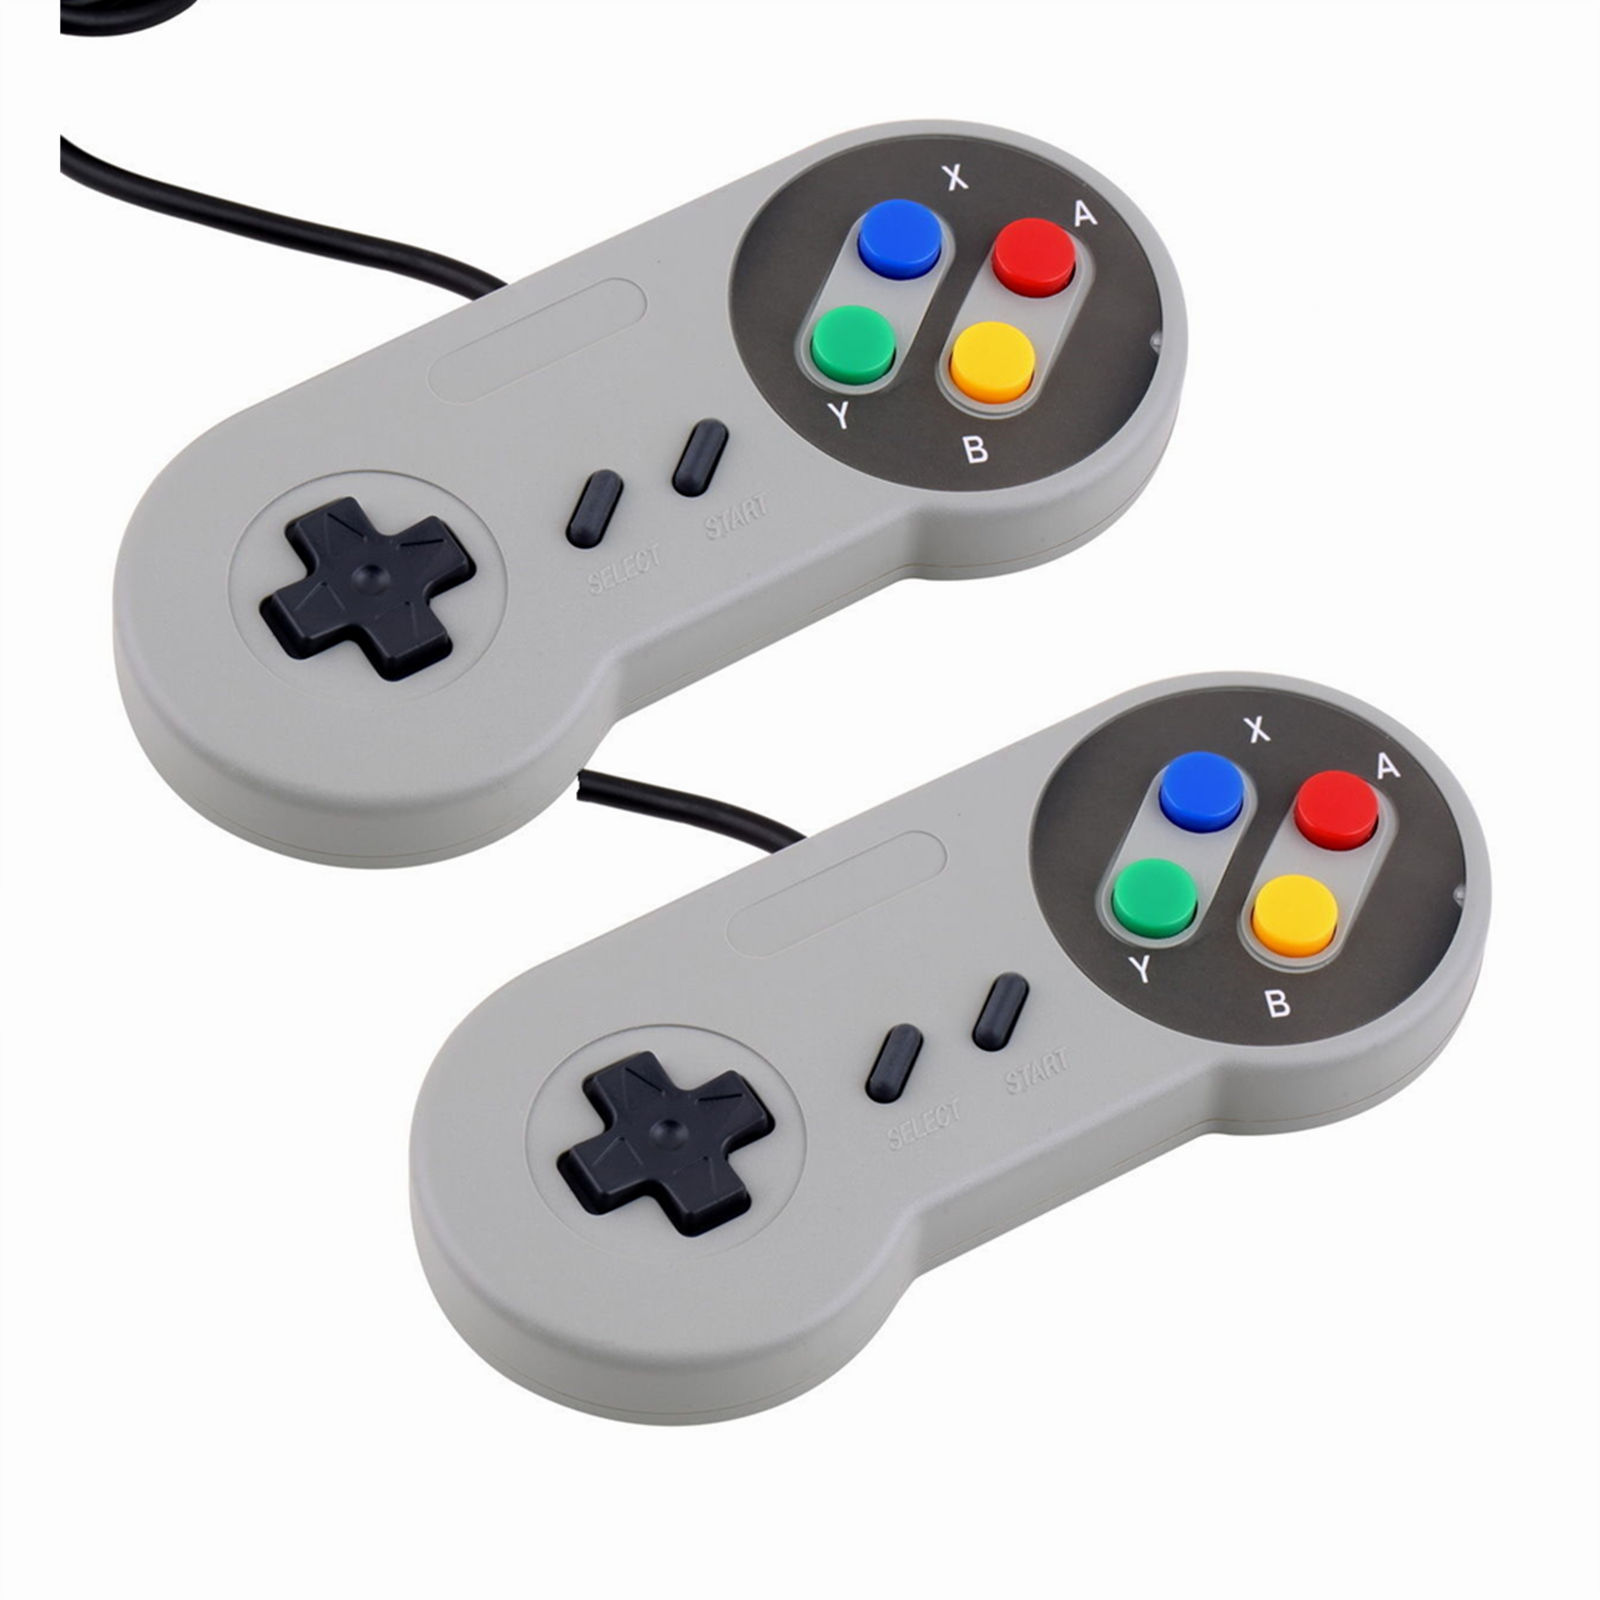 2x Super Nintendo SNES USB Controller GAME PAD For PC Raspberry Pi 3 RetroPie